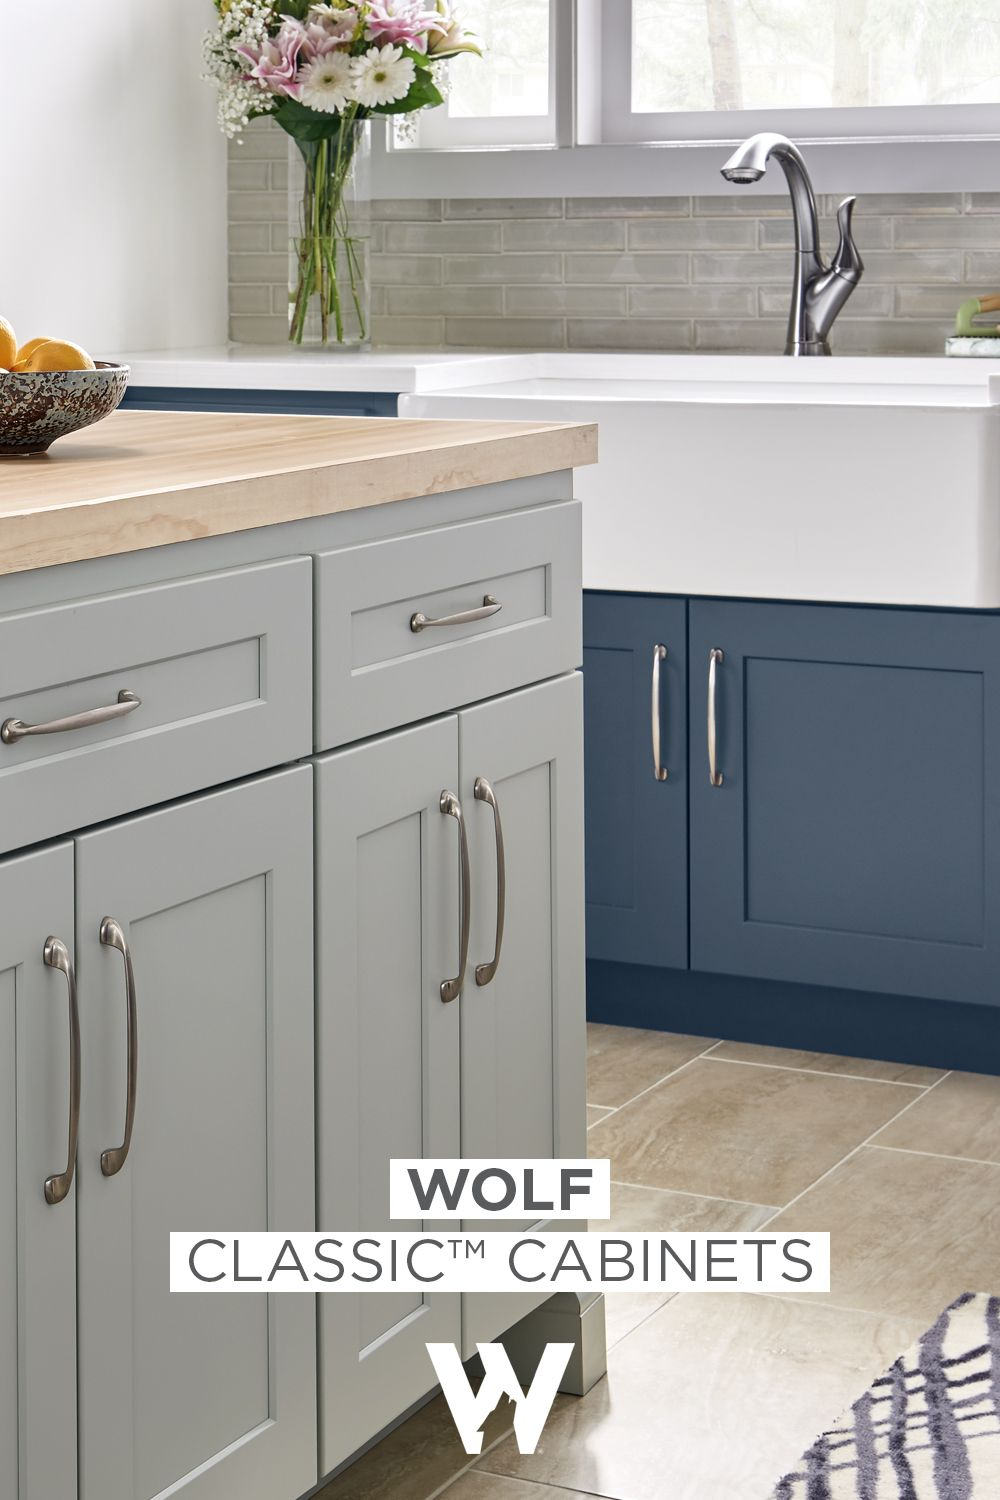 Wolf Classic Kitchen Cabinetry Wolf Home Products In 2020 Kitchen Cabinets On A Budget Quality Kitchen Cabinets Classic Kitchen Cabinets